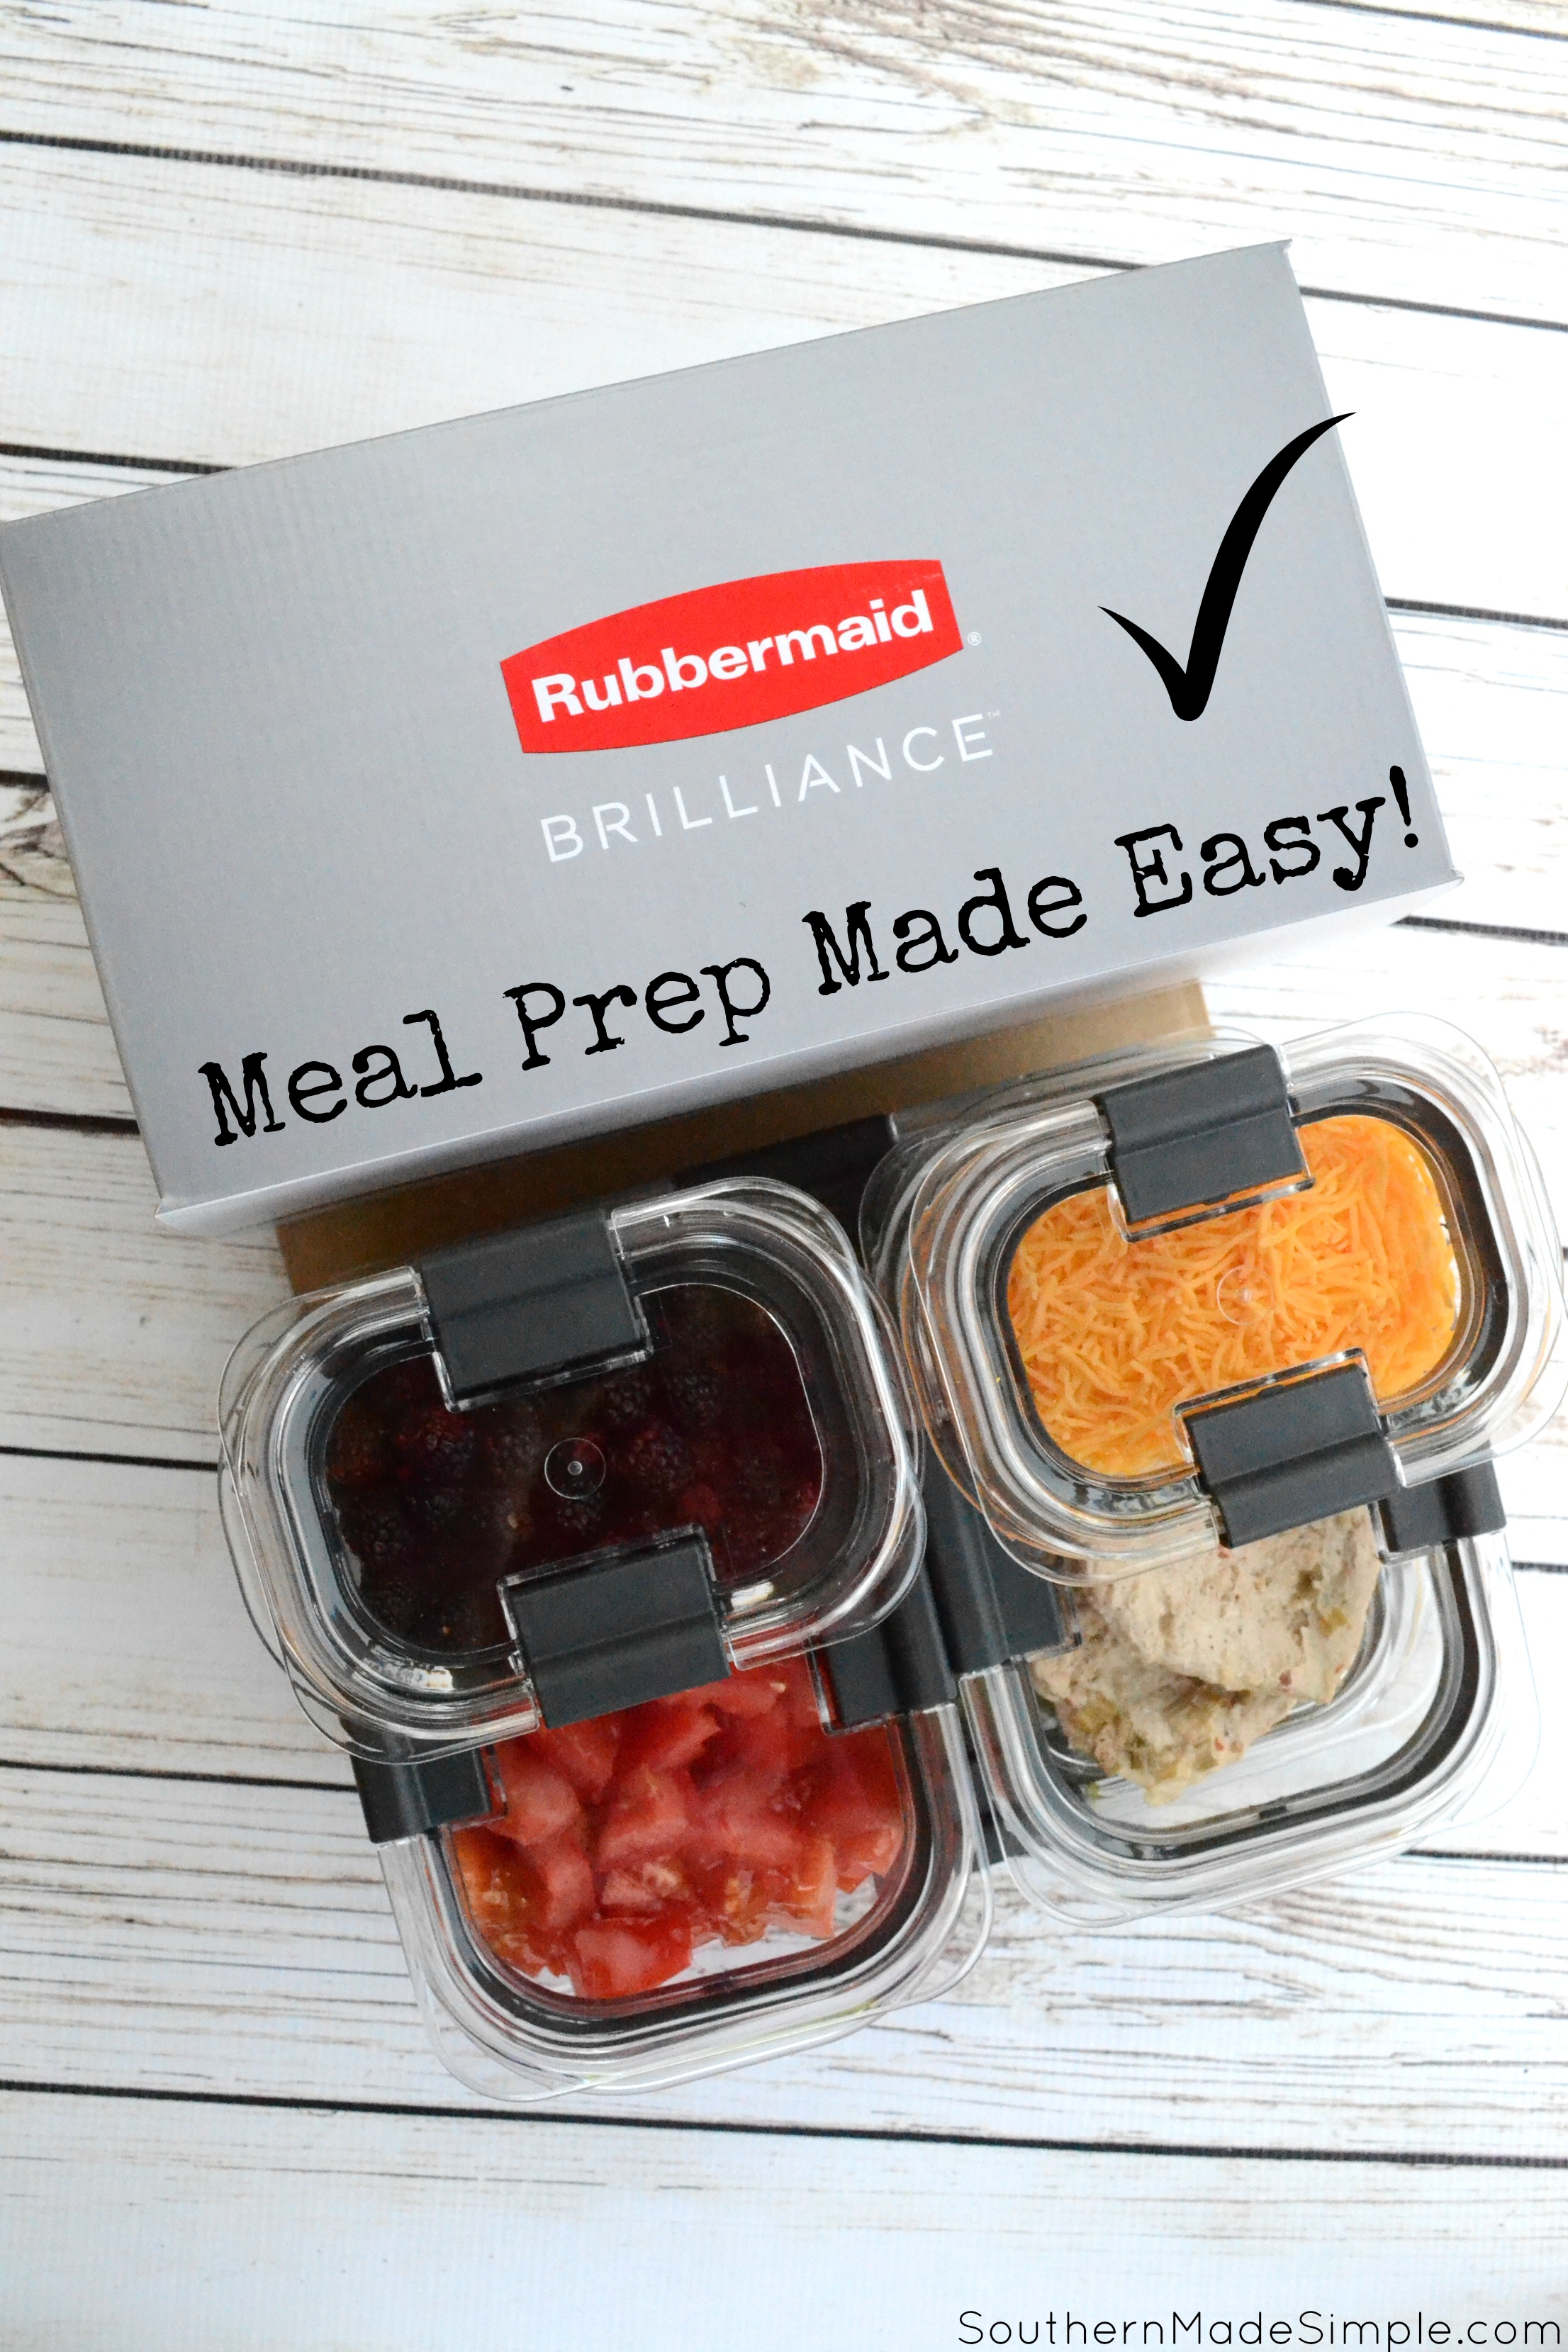 Meal Prep Made Easy with Rubbermaid Brilliance Review #StoredBrilliantly #ad